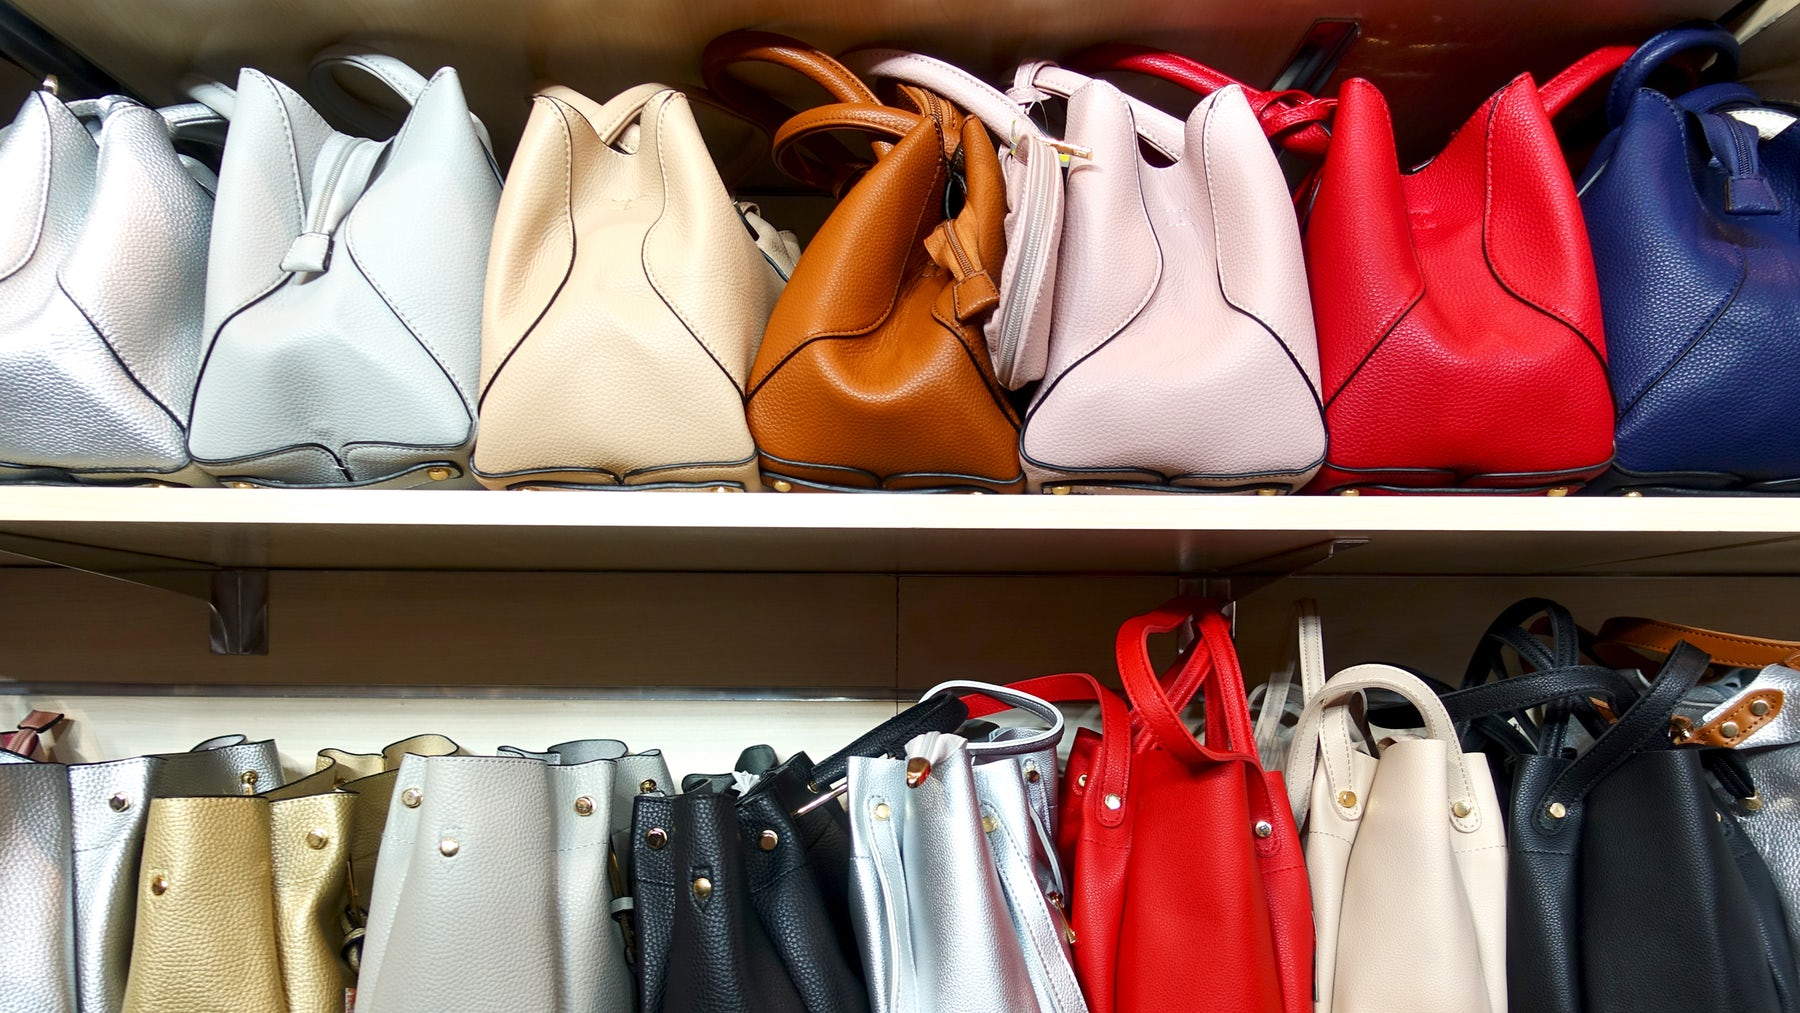 Luxury handbags in a store | Source: Shutterstock